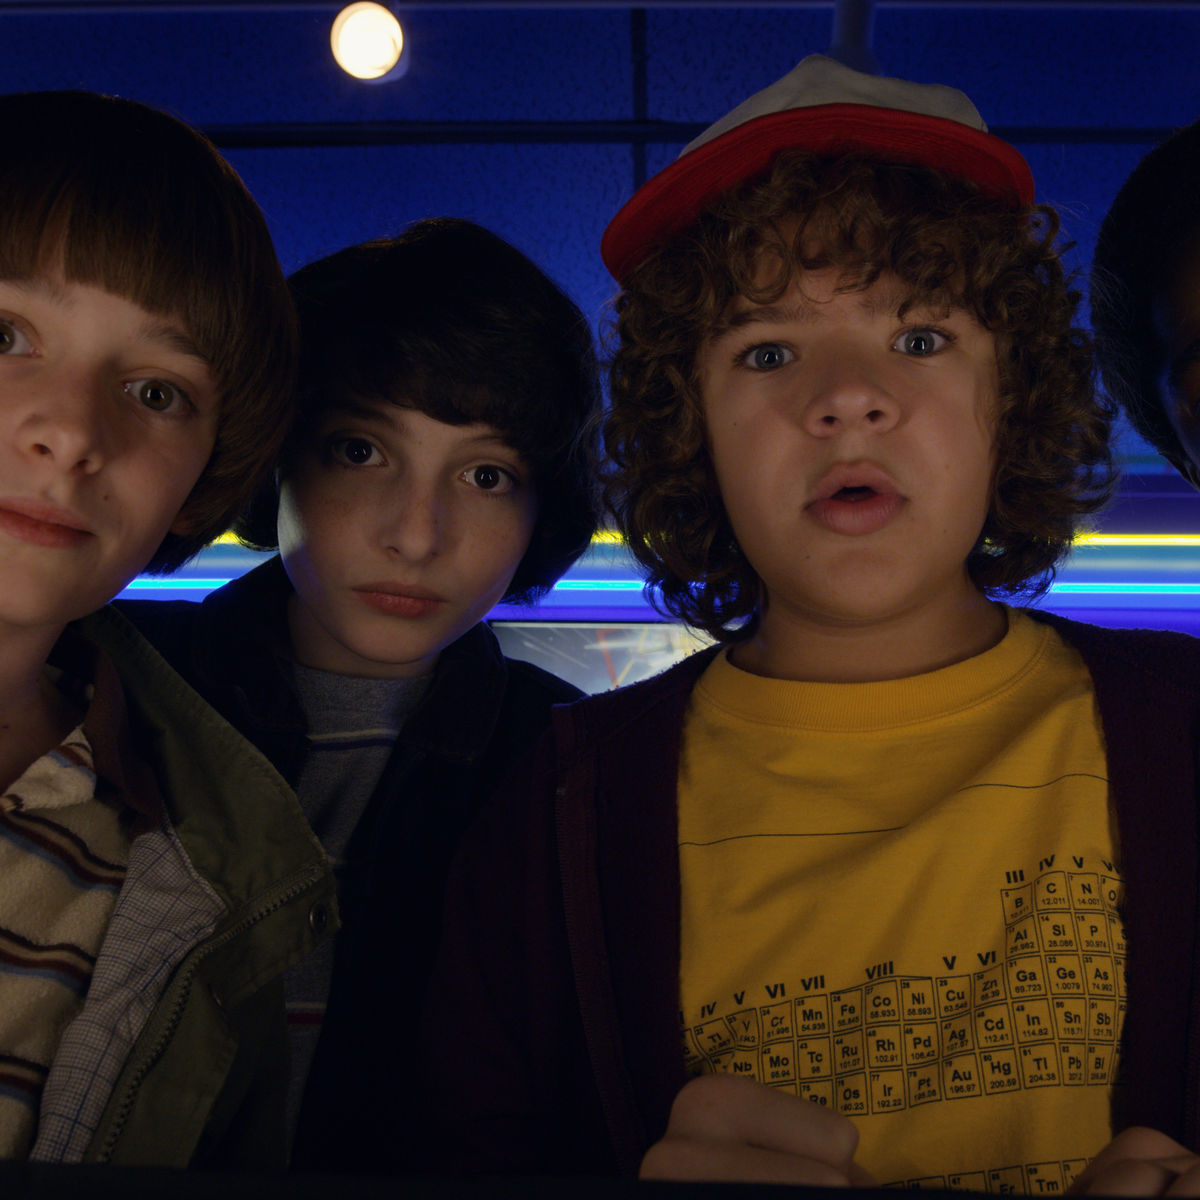 'Stranger Things 3' Start Date Confirmed In Eerie New Year's Day Message